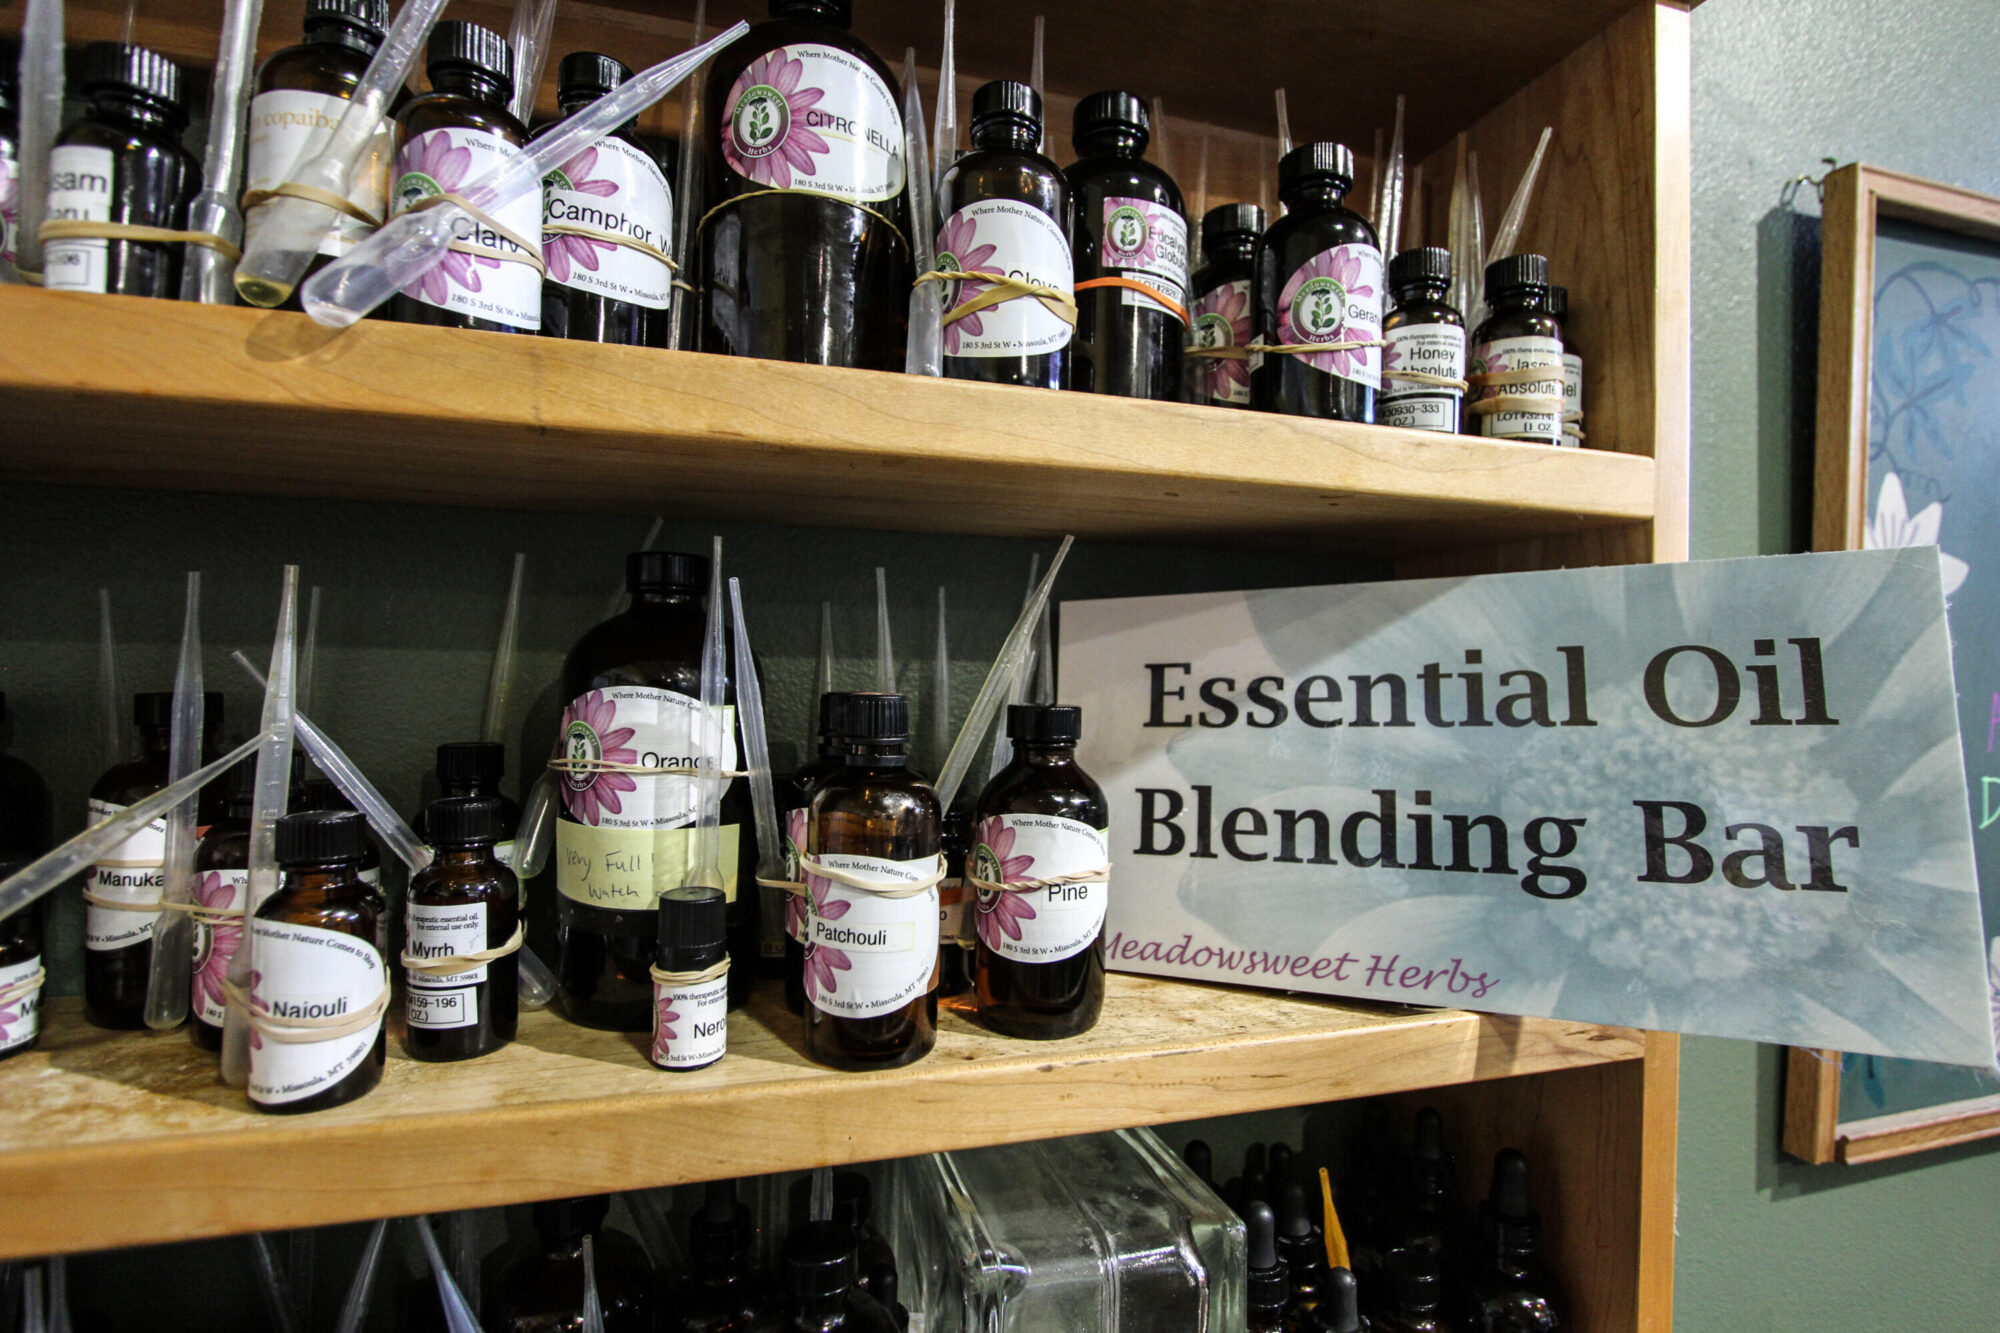 dozens of 1/2 ounce to 4 ounce brown bottles with plastic pipettes contain essential oils on a shelf